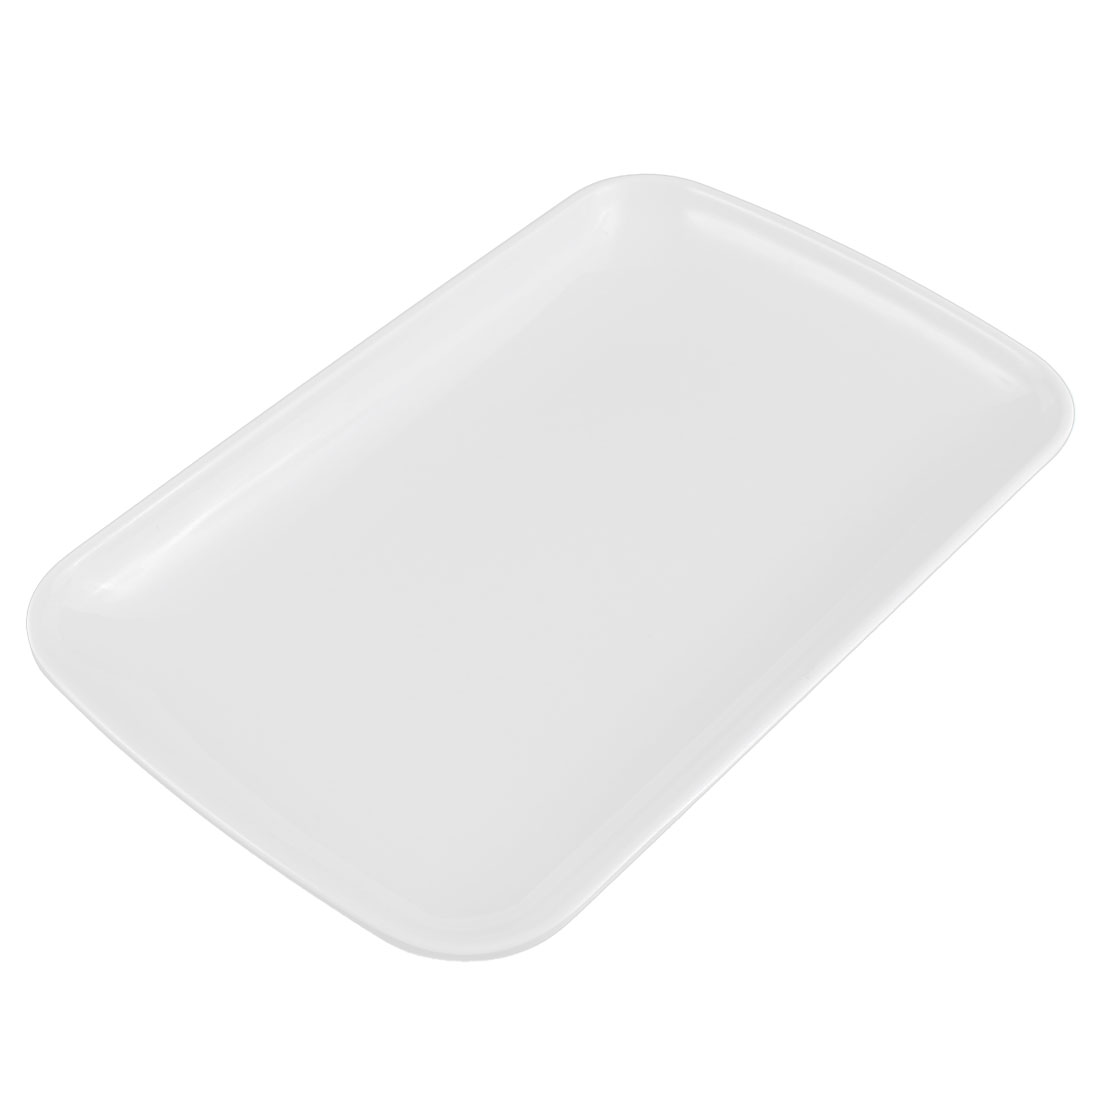 "Plastic Rectangle Shaped Dinner Dessert Vermicelli Snack Plate Dish White 9.5"" x 6"""